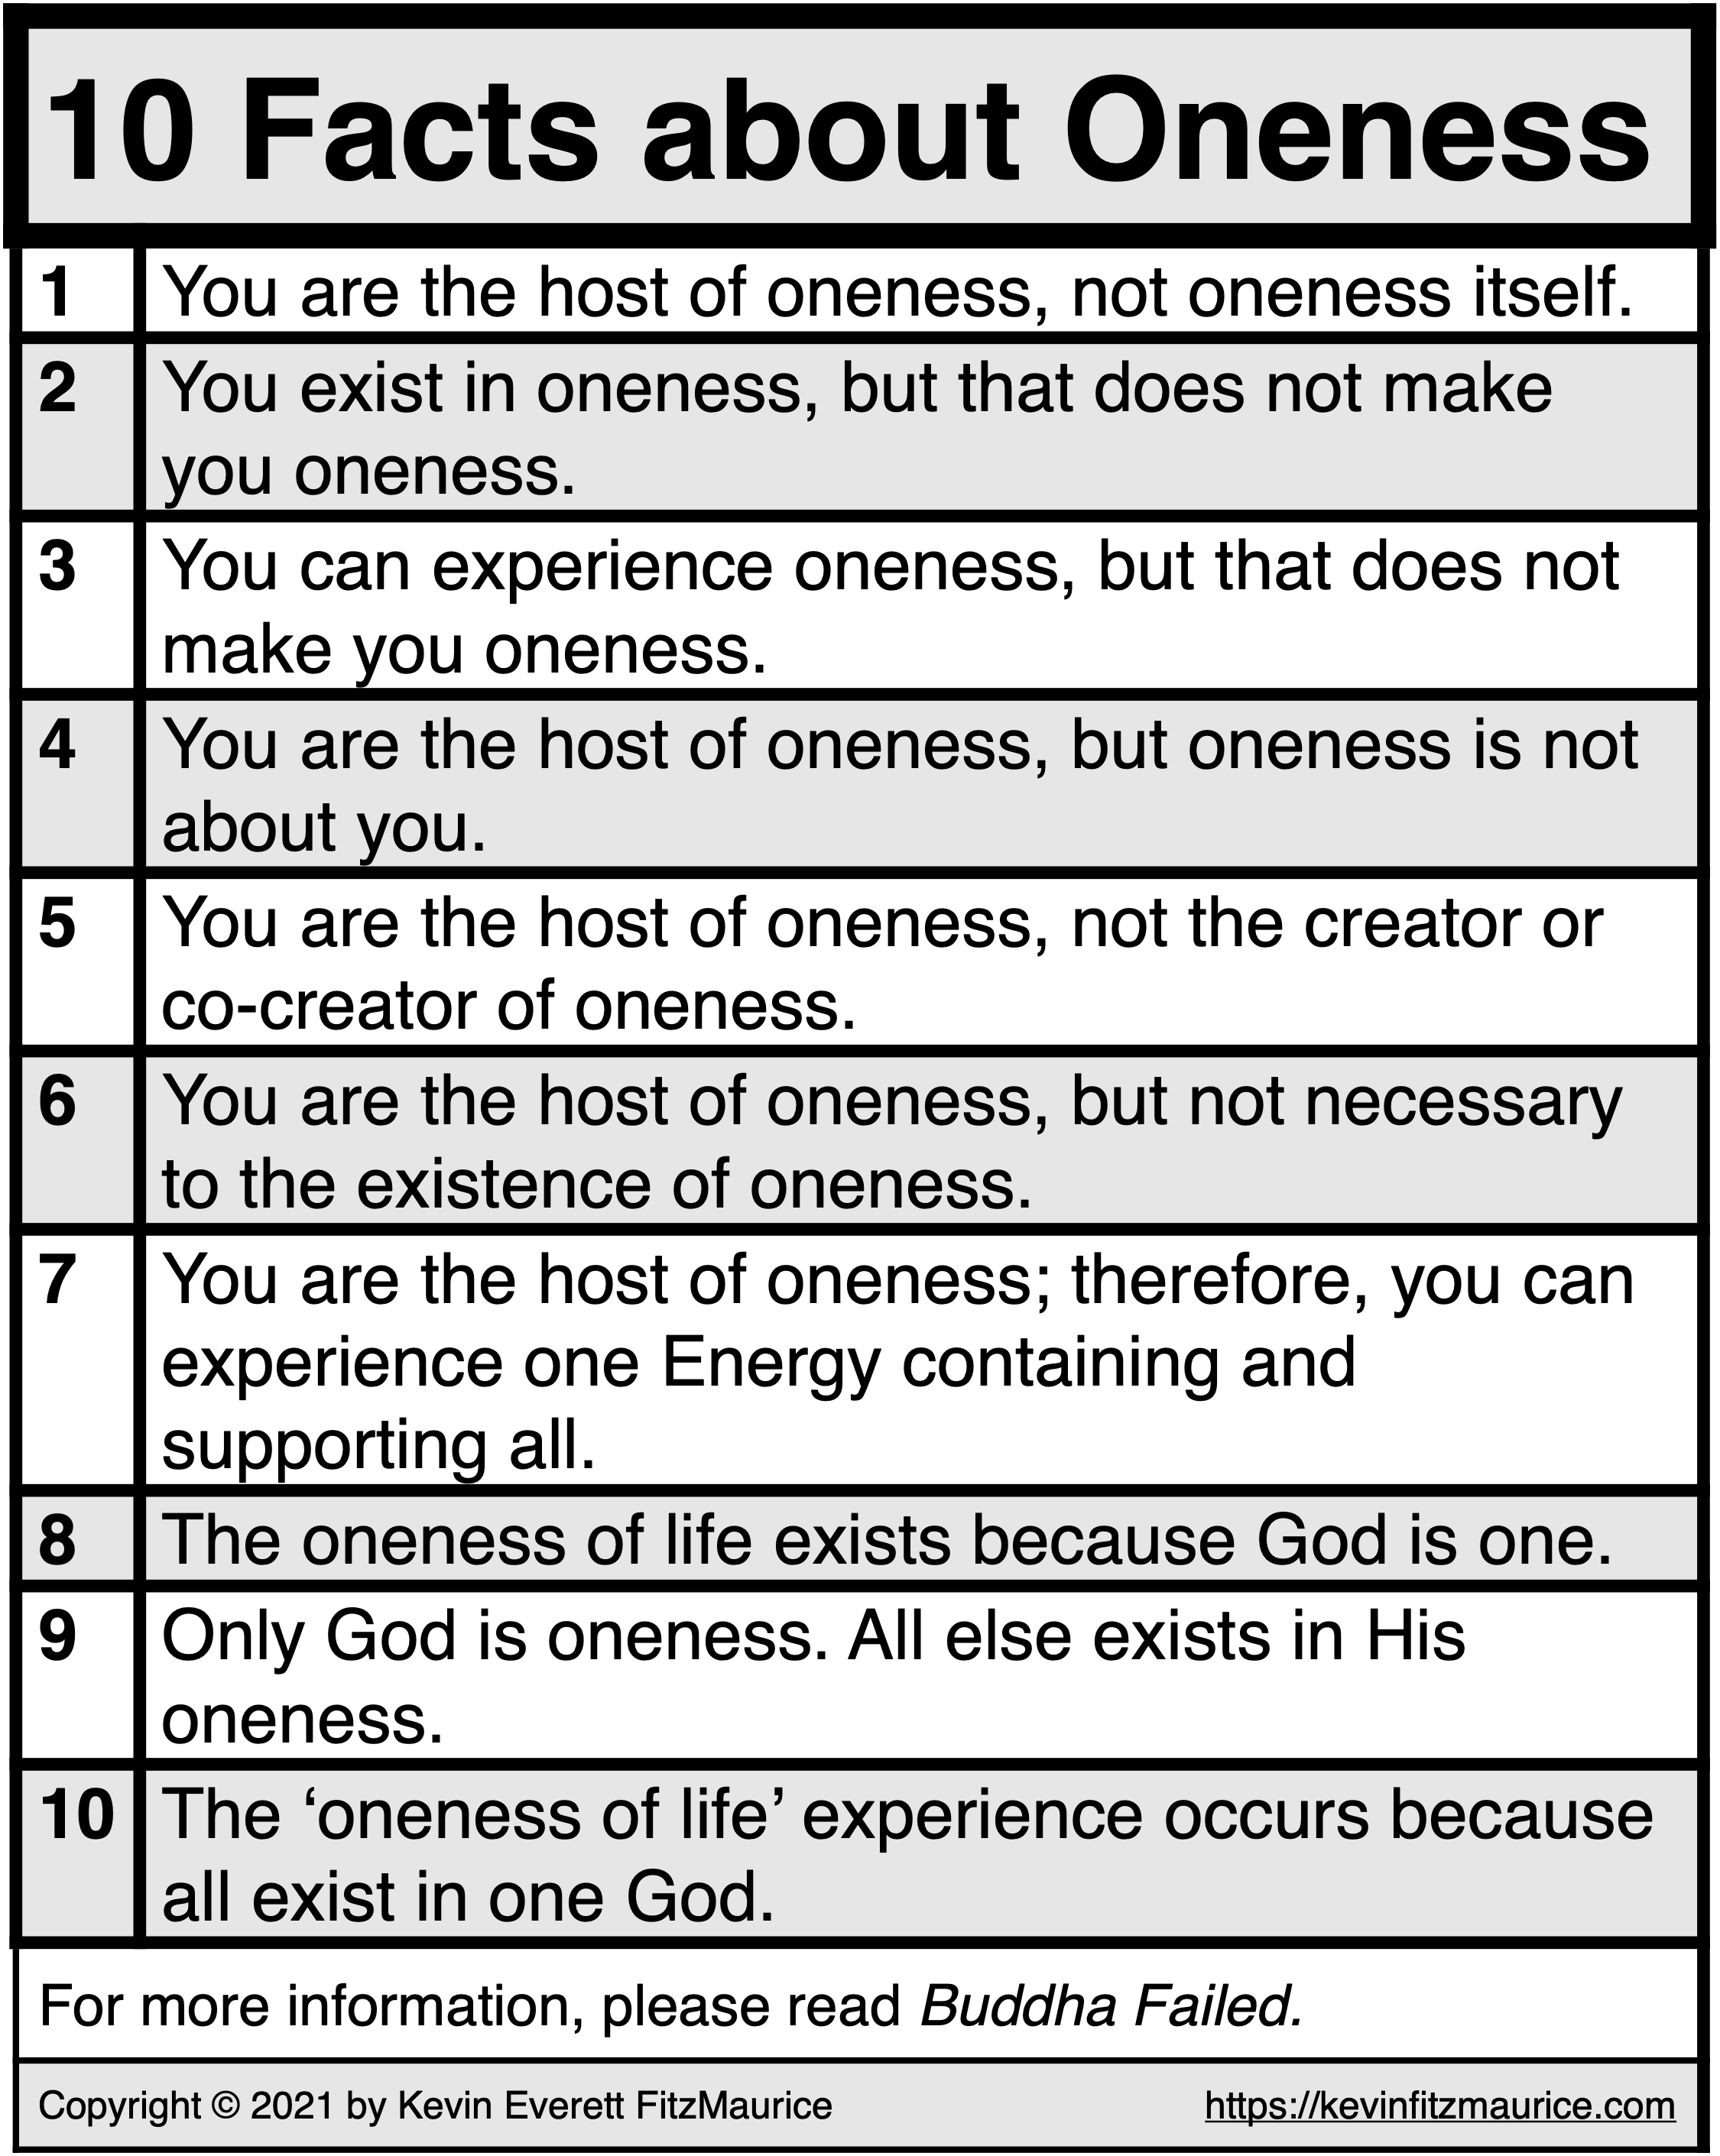 10 Facts About Oneness Are Listed